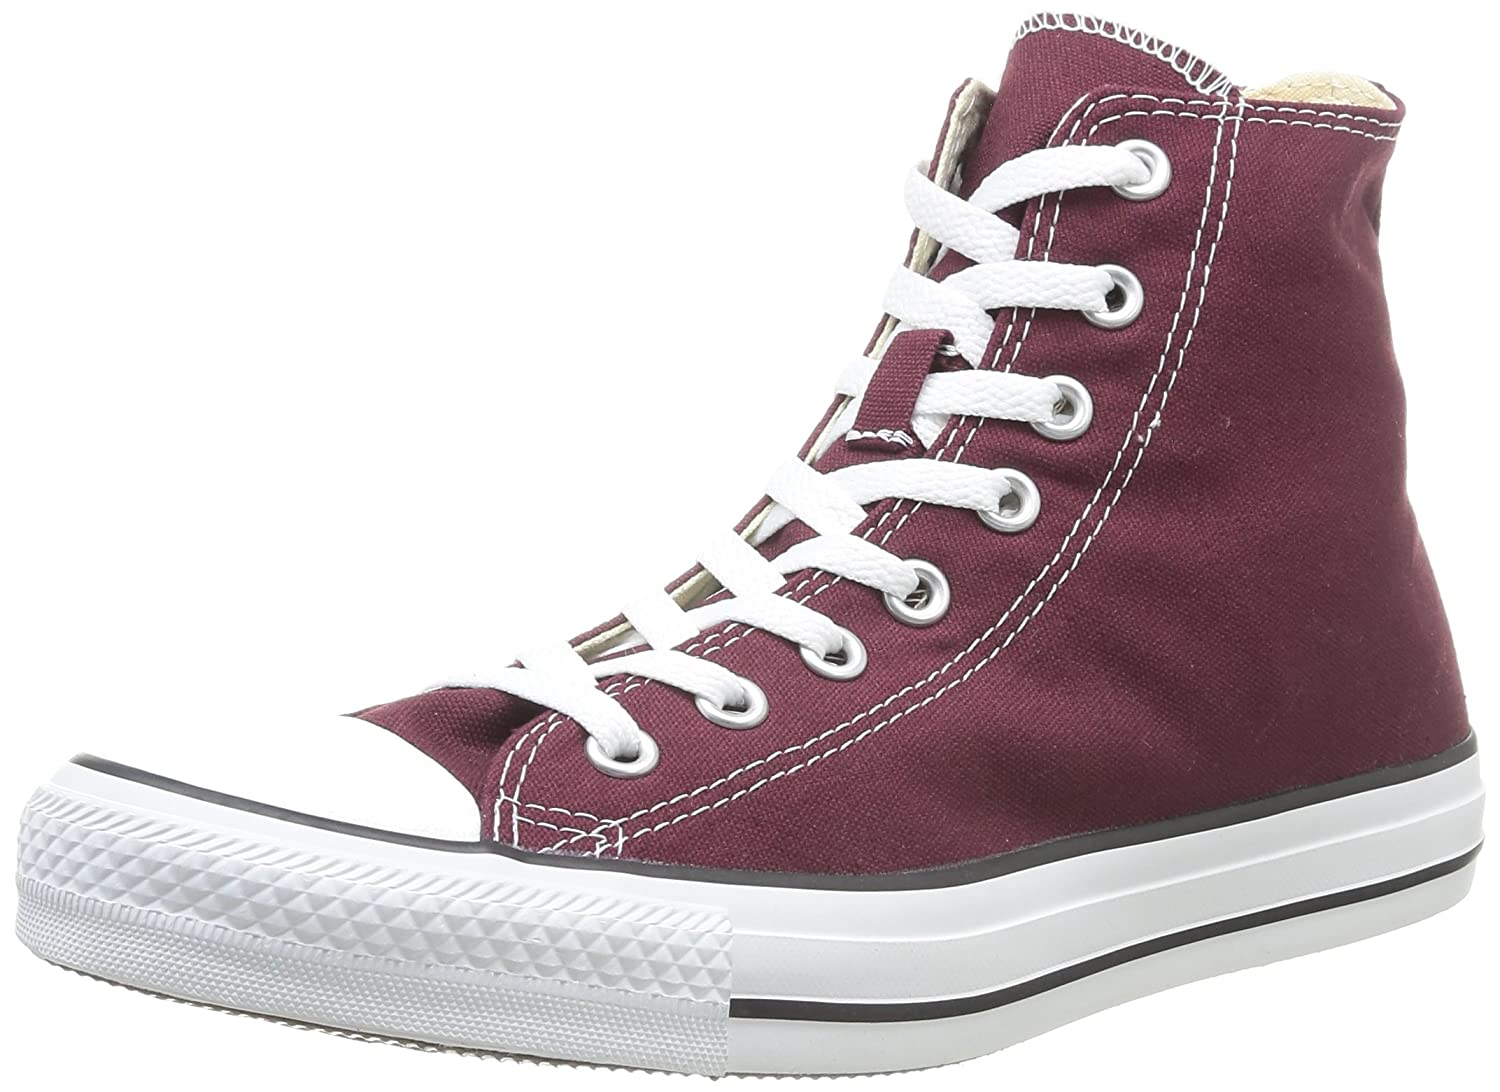 Converse Chuck Taylor All Star Seasonal Color Hi B00DV83BJU 10.5 D(M) US Men|Burgundy